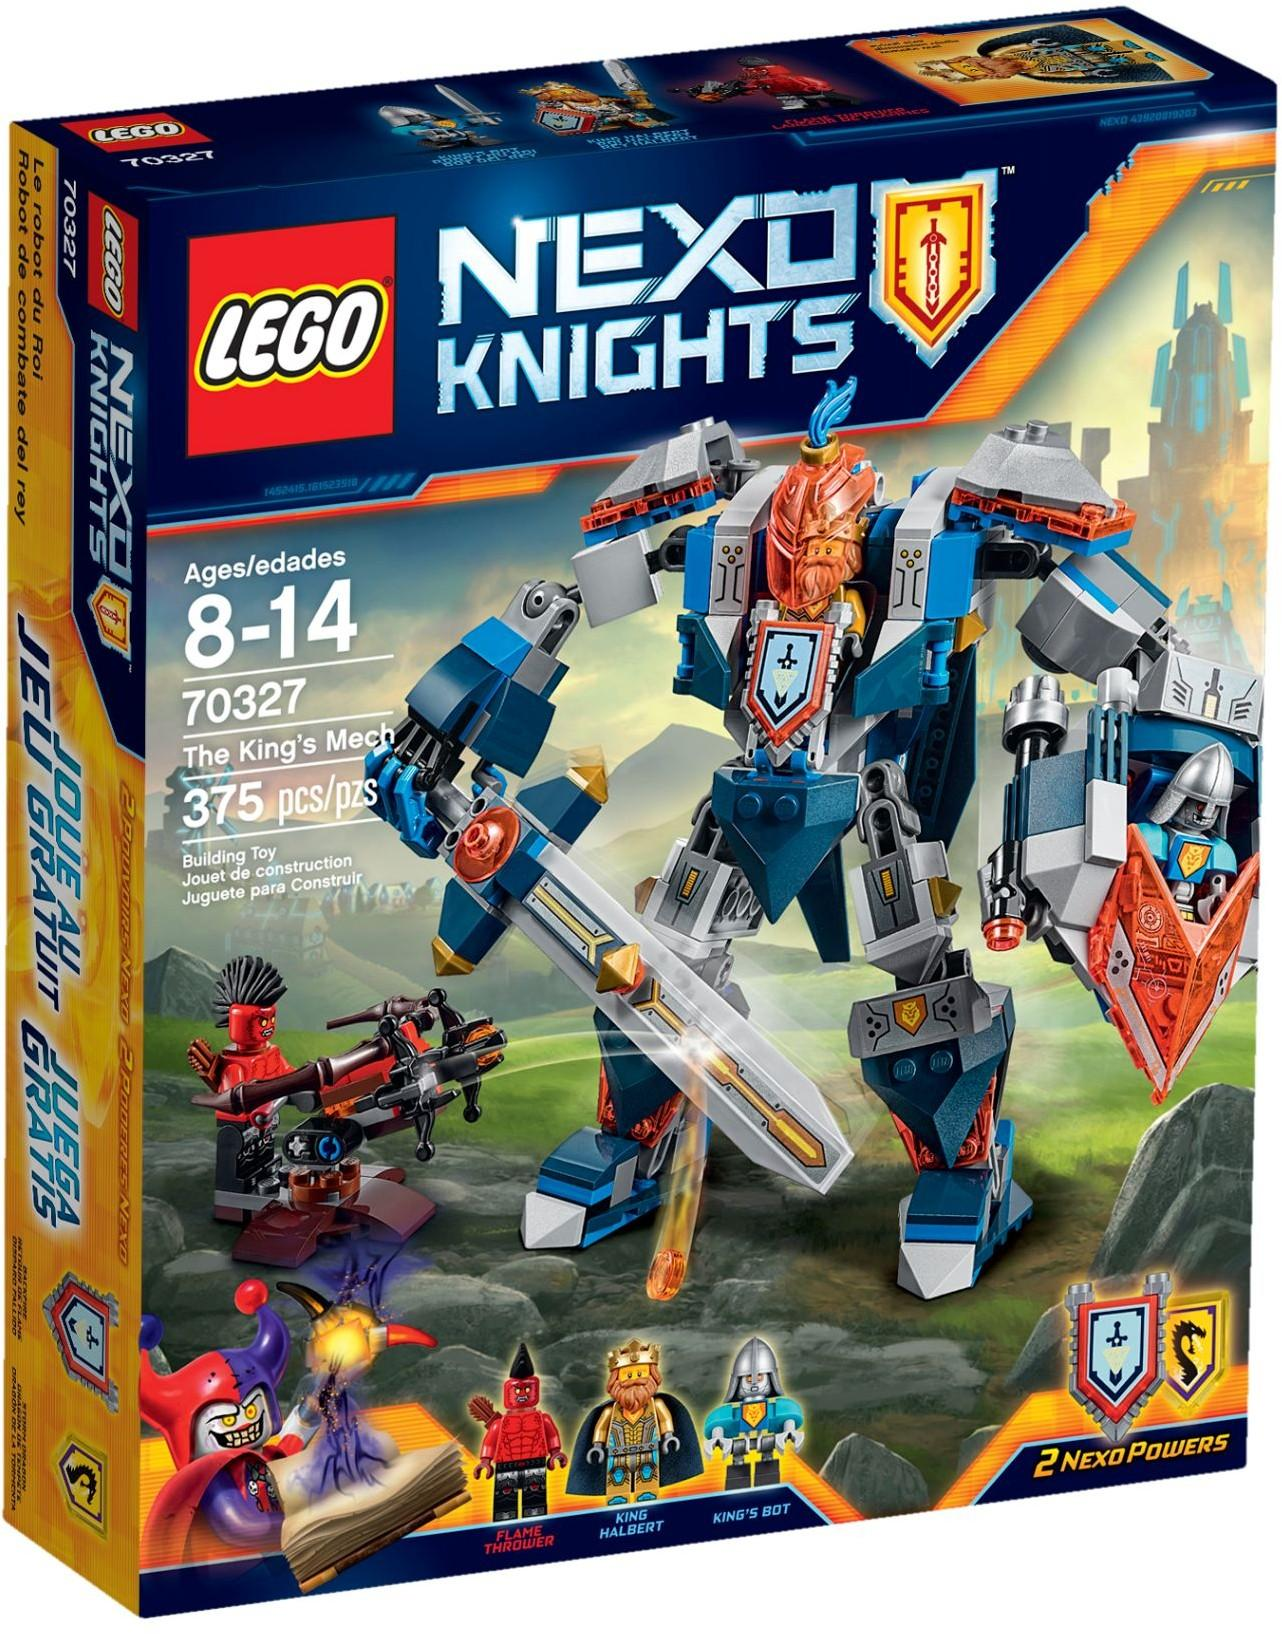 Lego Nexo Knights The King's Mech